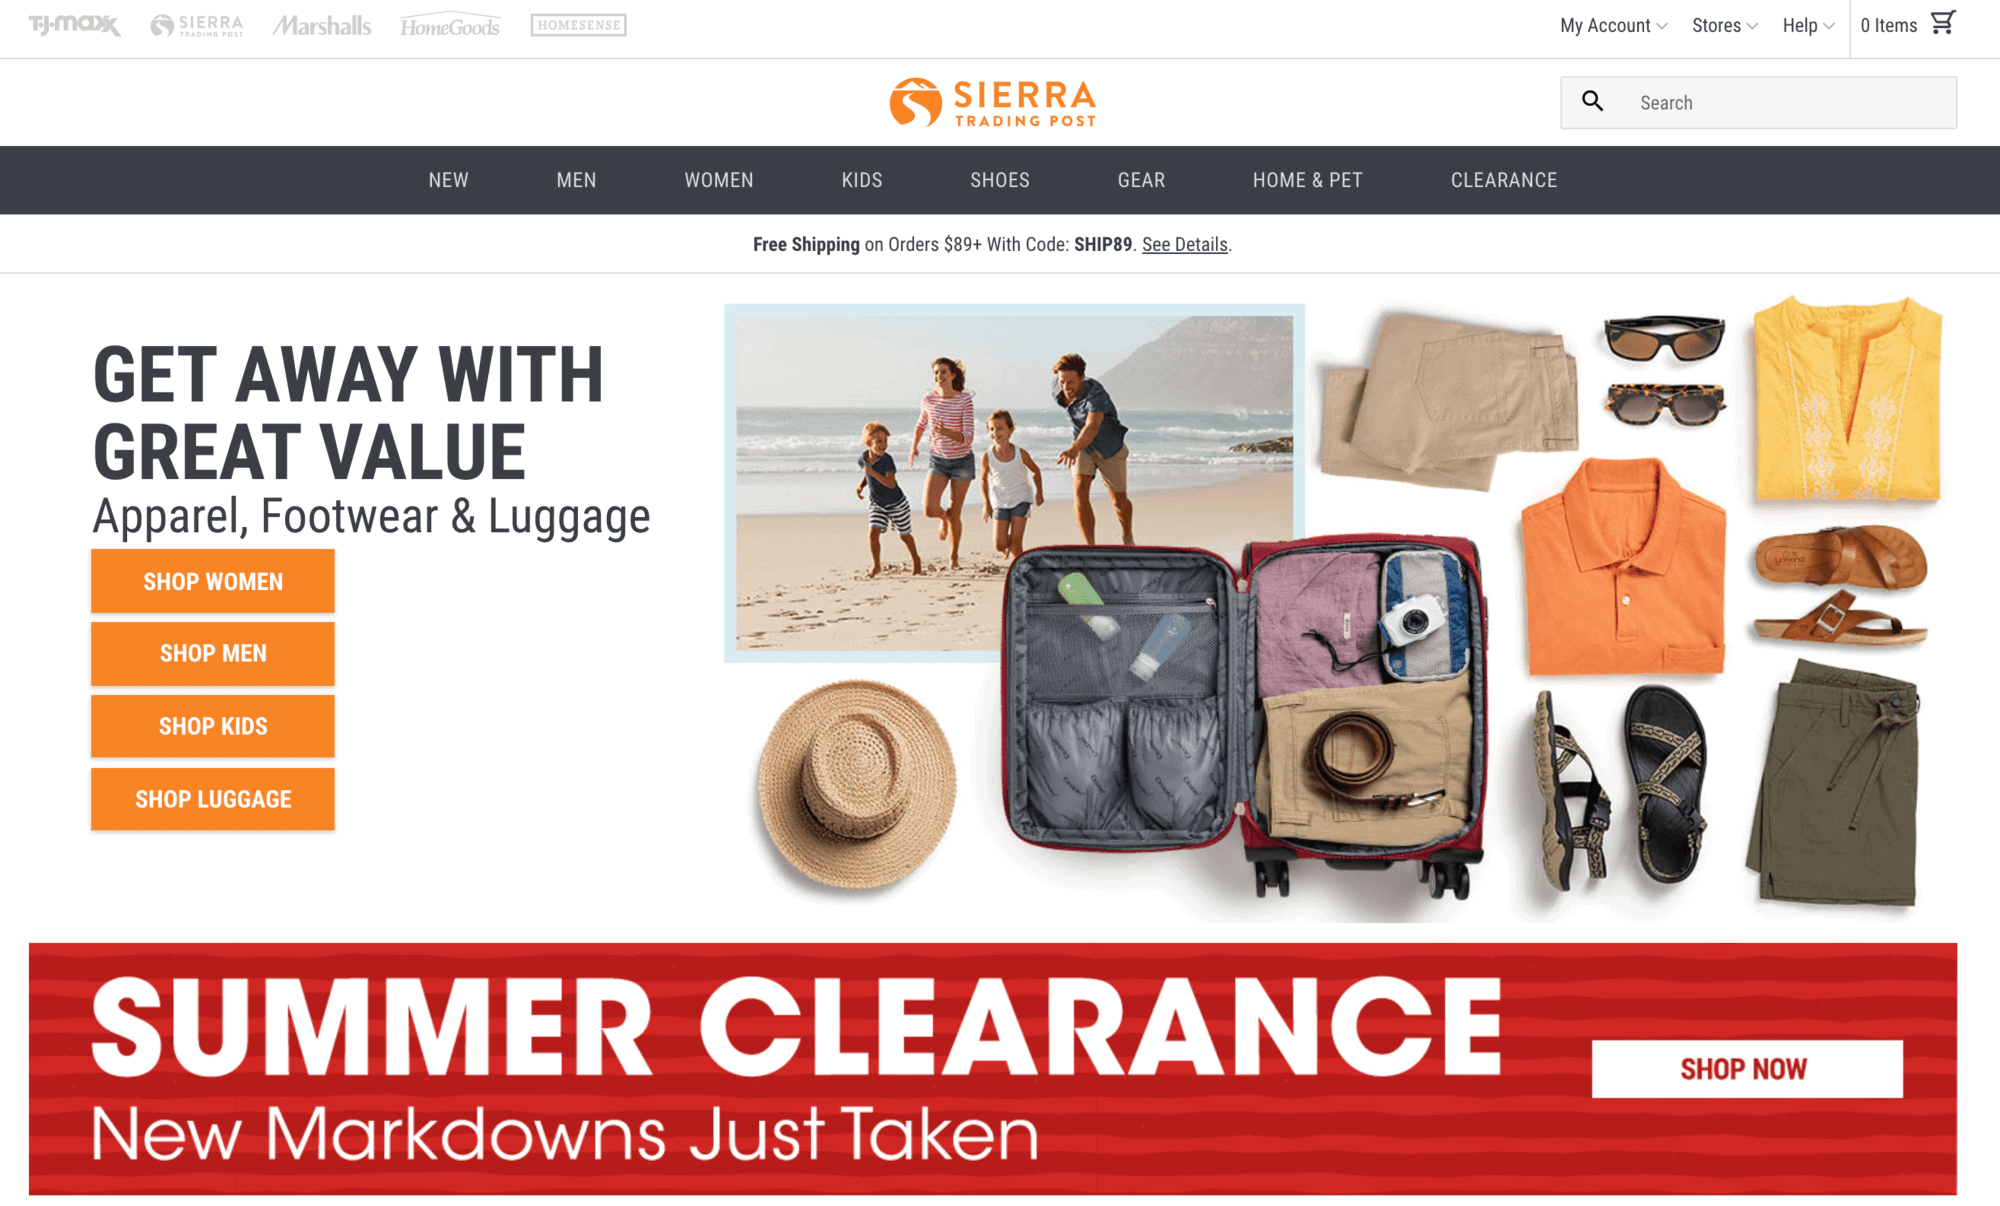 Sierra Trading Post is a great option for finding discounted outdoor gear online